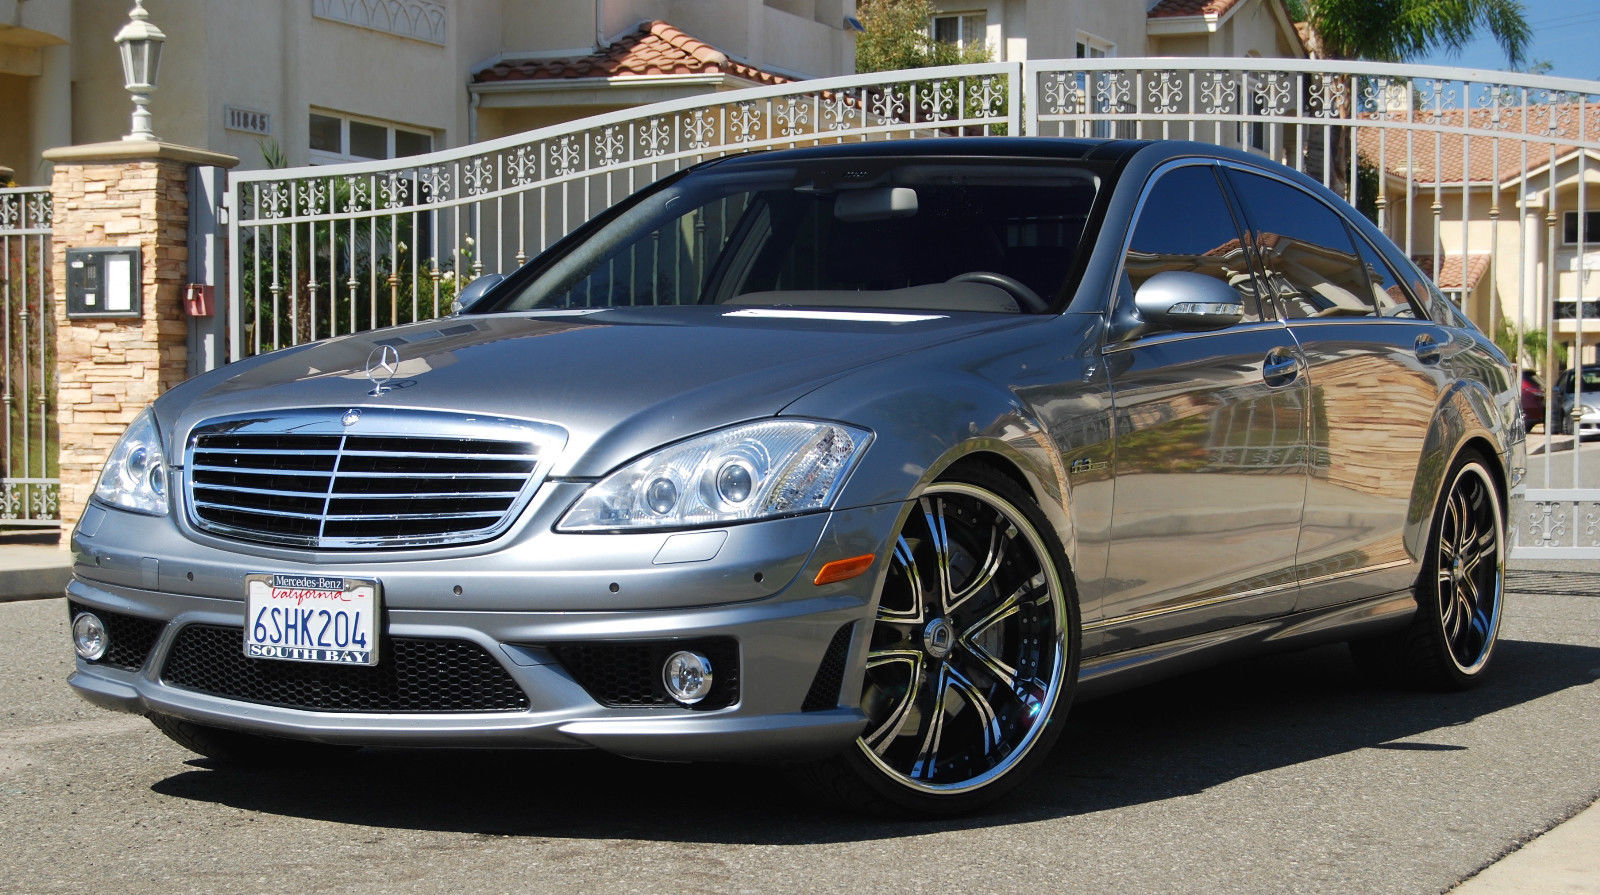 Mercedes benz w221 s63 amg on 22 asanti wheels benztuning for Amg wheels for mercedes benz